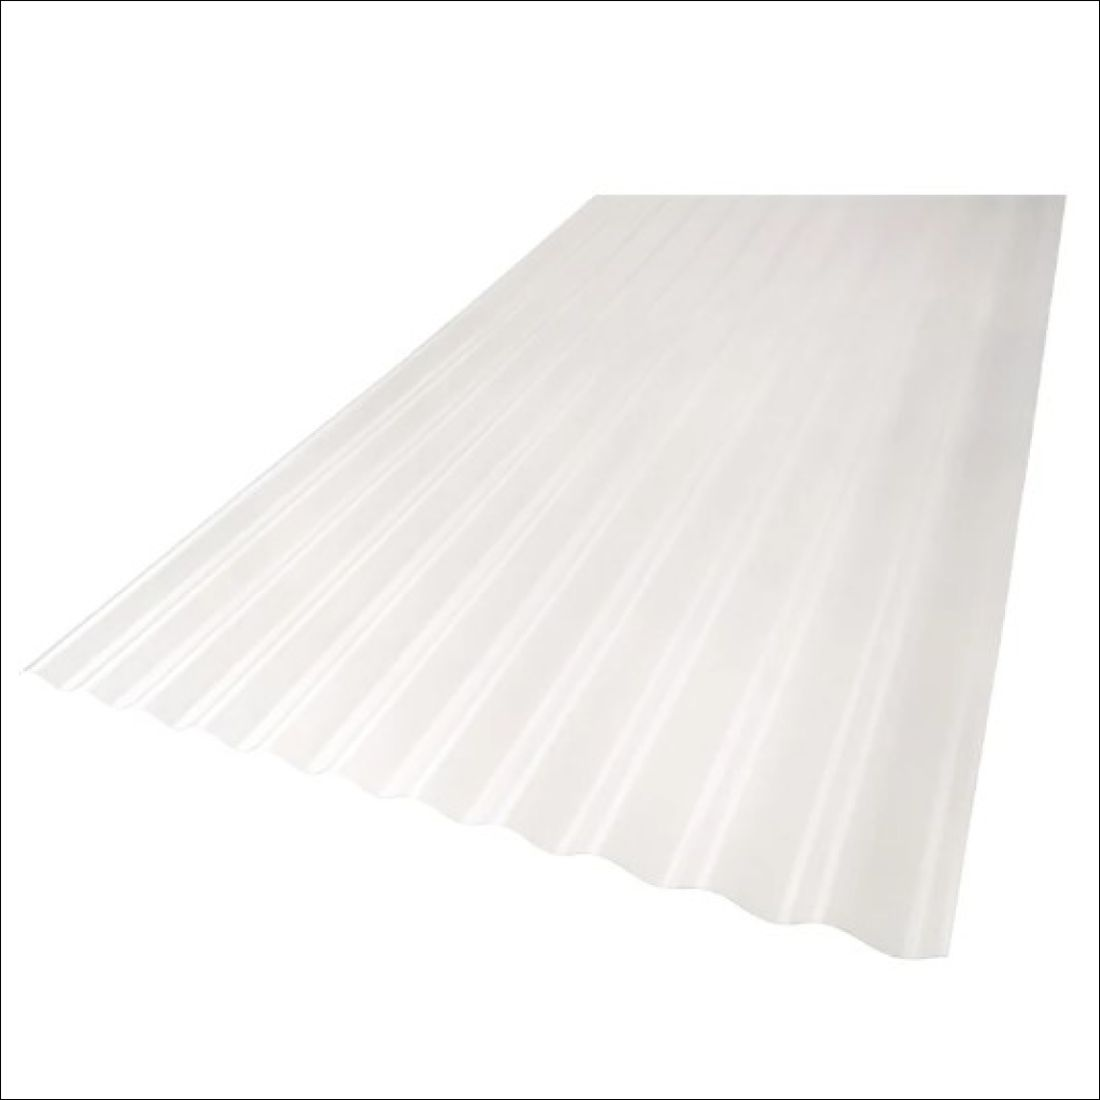 Tufclad Ultra Polycarbonate Clear Corrugated 4800 x 860mm